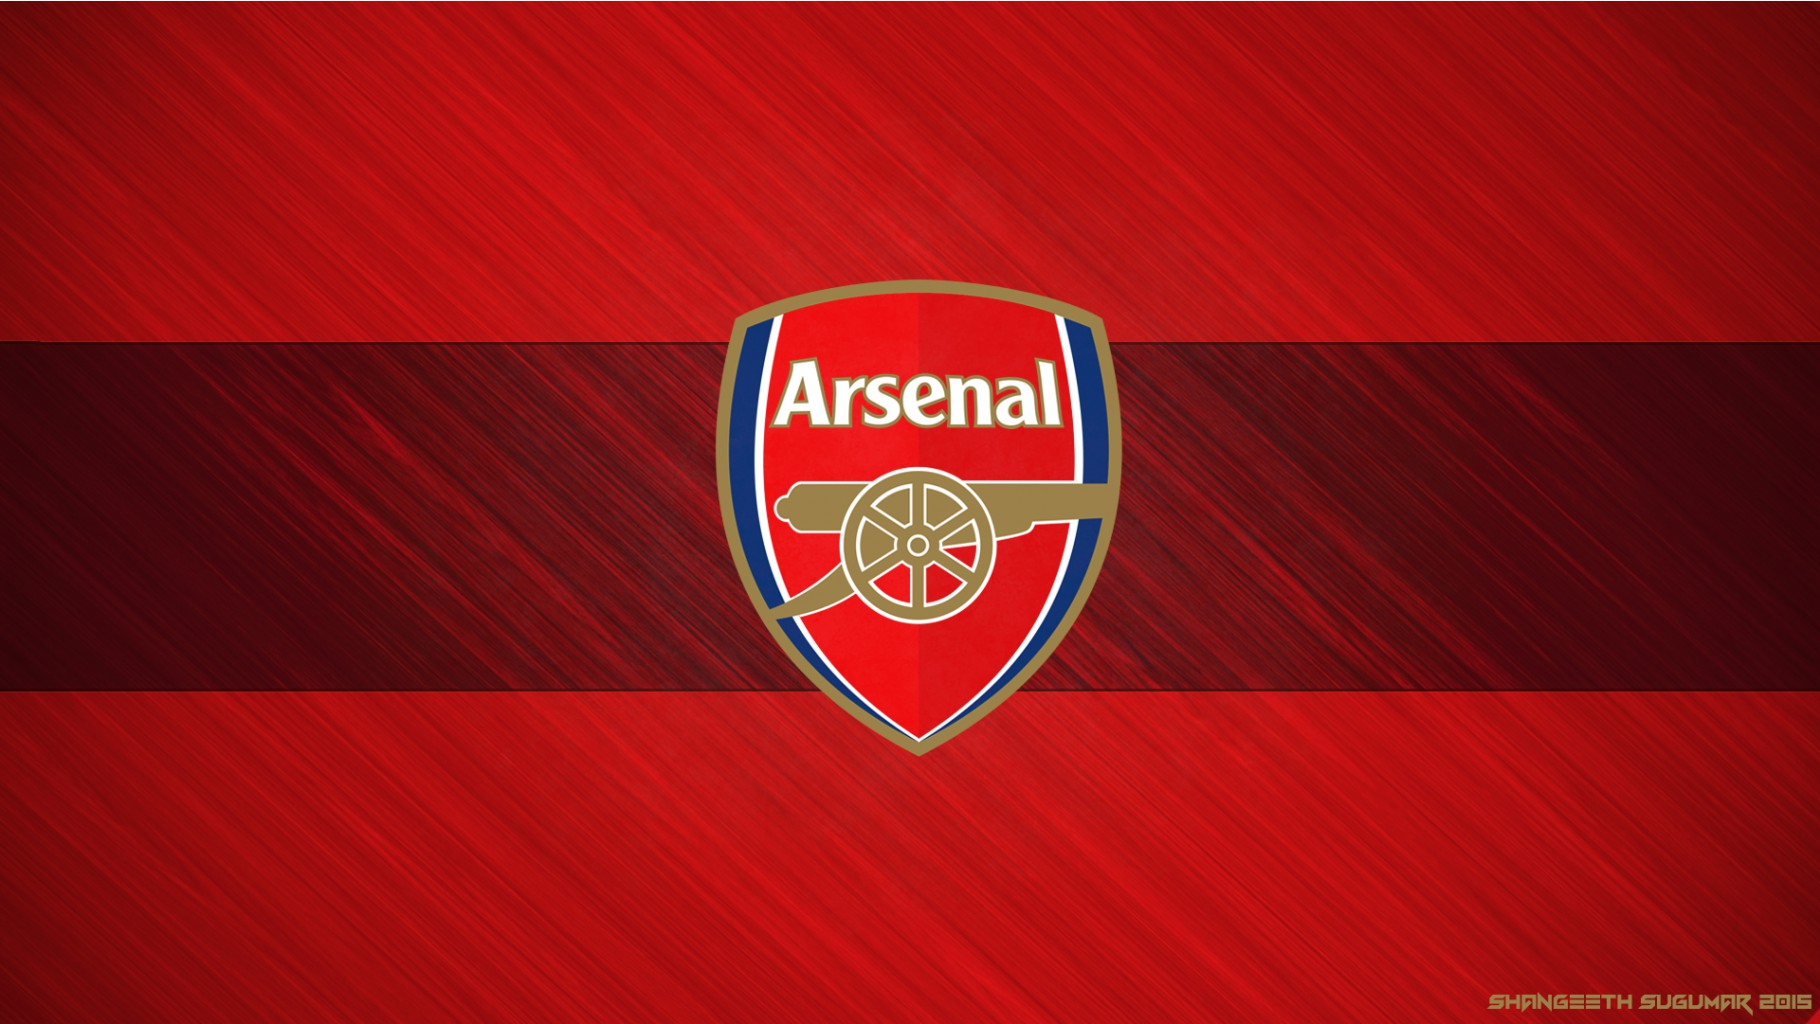 Wallpaper Arsenal Terbaru Musim 2015 2016.jpg